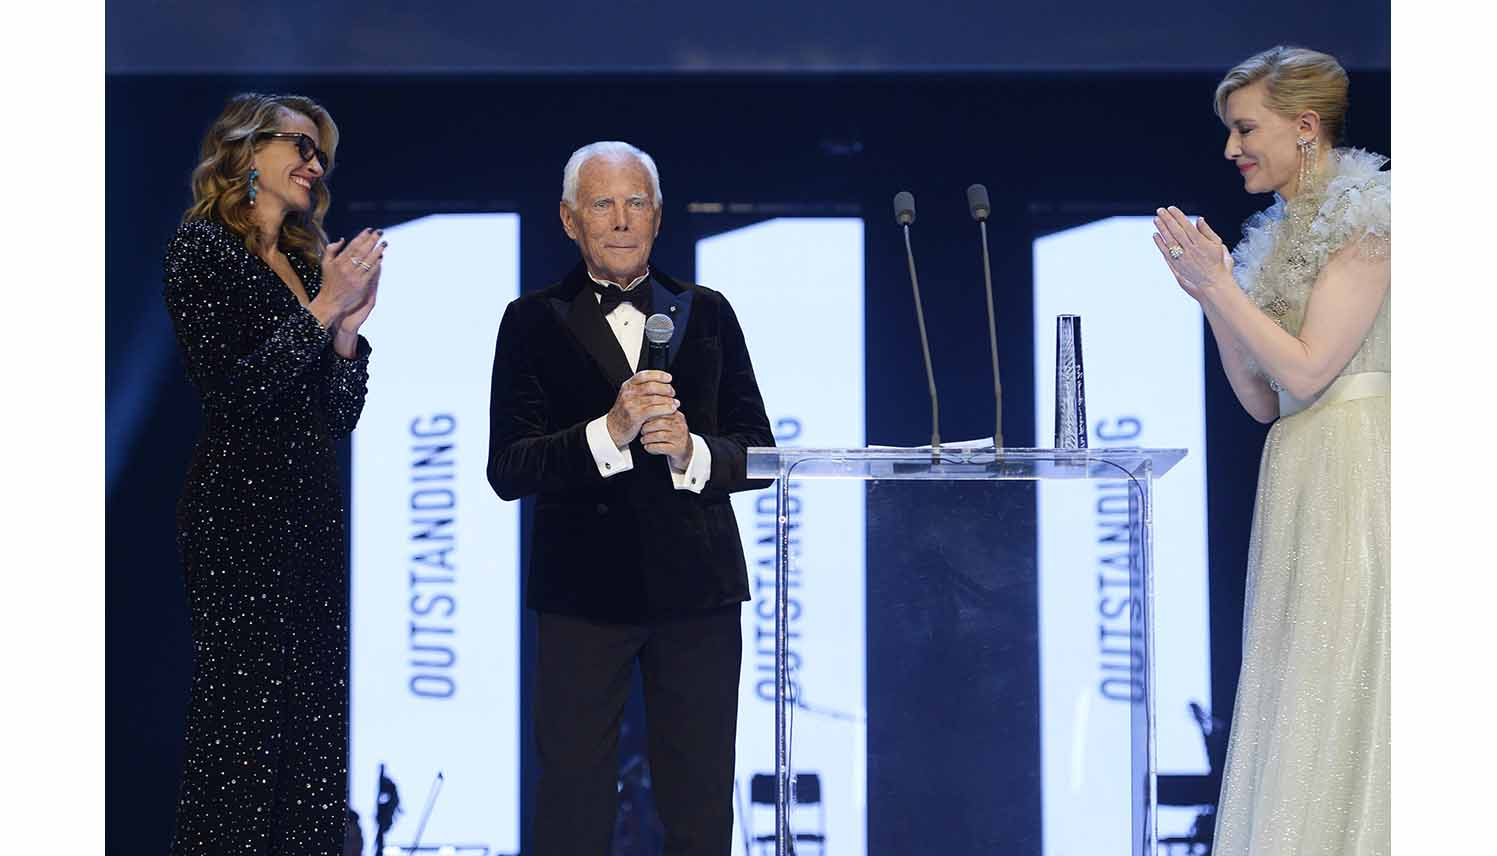 Giorgio Armani Lauded with the Outstanding Achievement Award at the 2019 British Fashion Awards